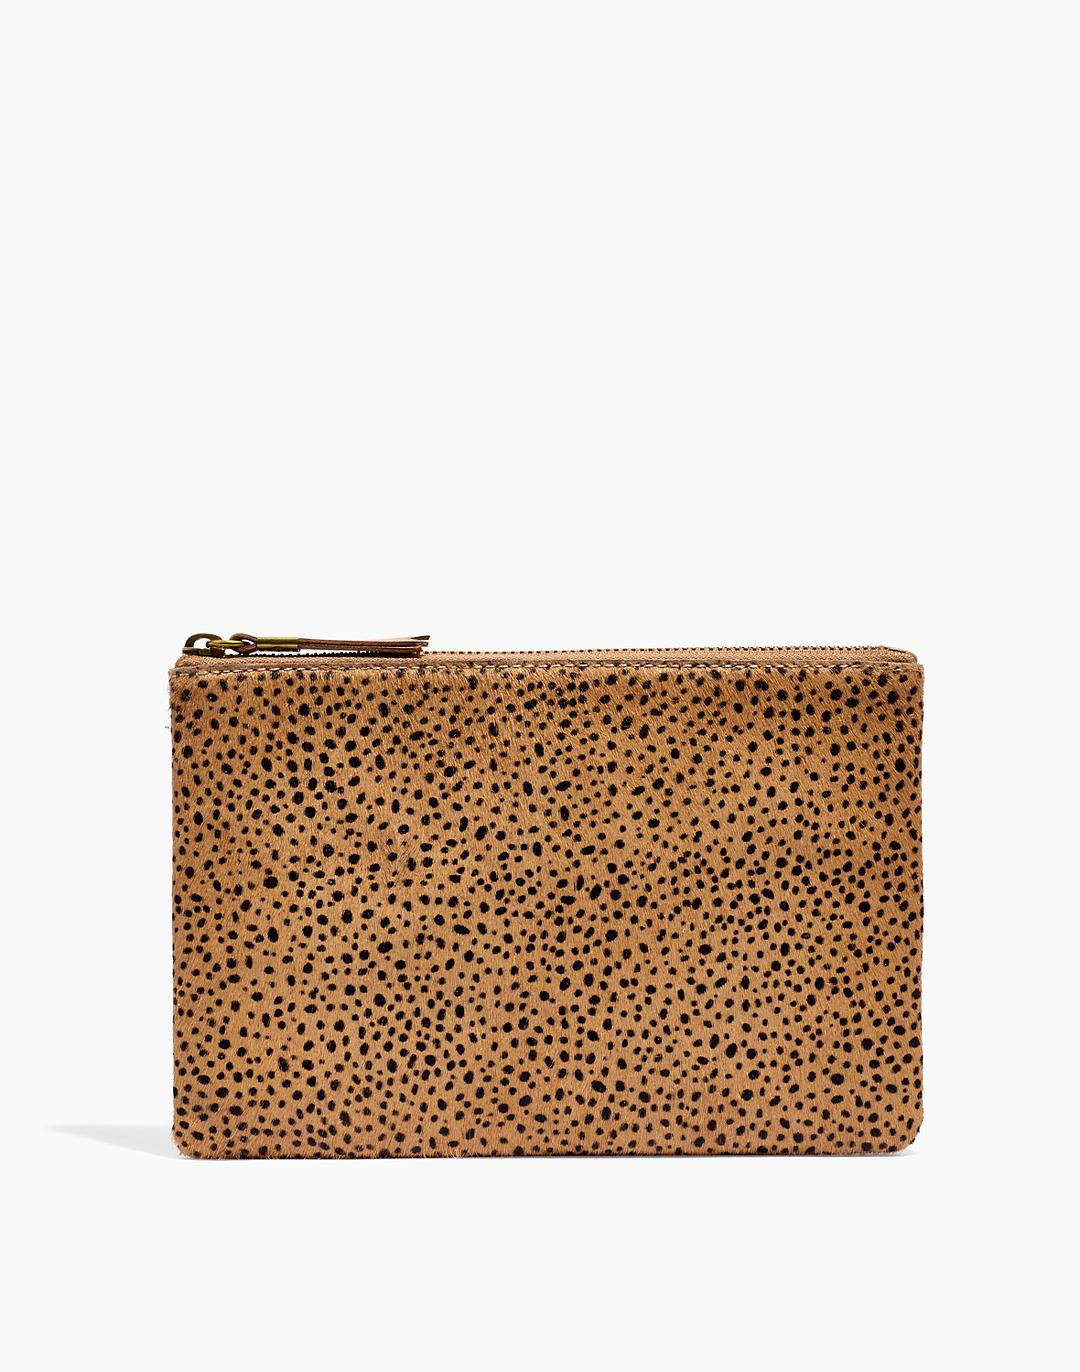 The Leather Pouch Clutch: Dotted Calf Hair Edition